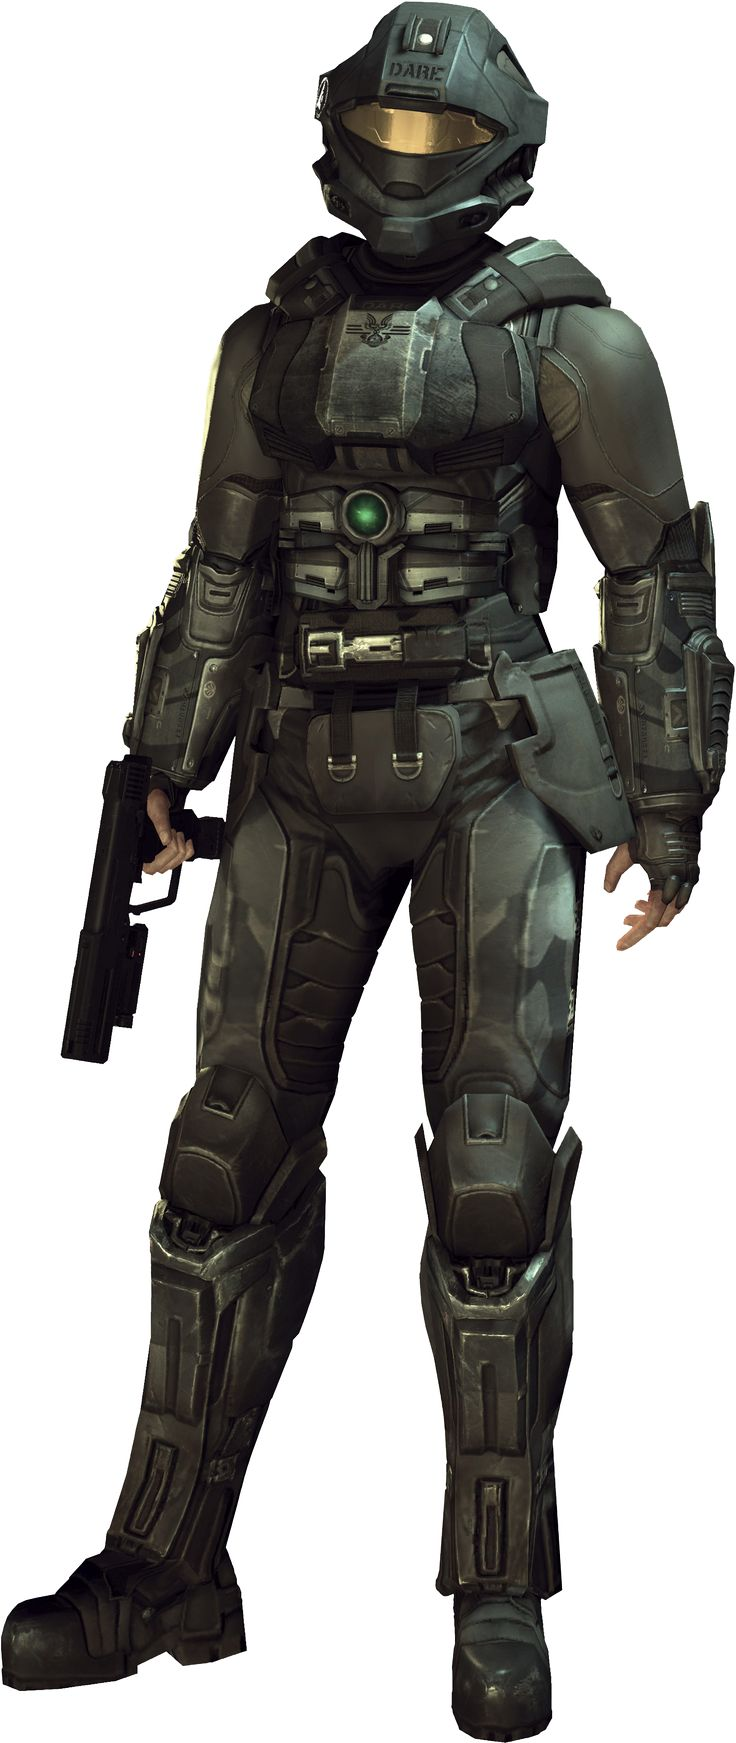 'Miss Naval Intelligence' Veronica Dare- HALO 3: ODST